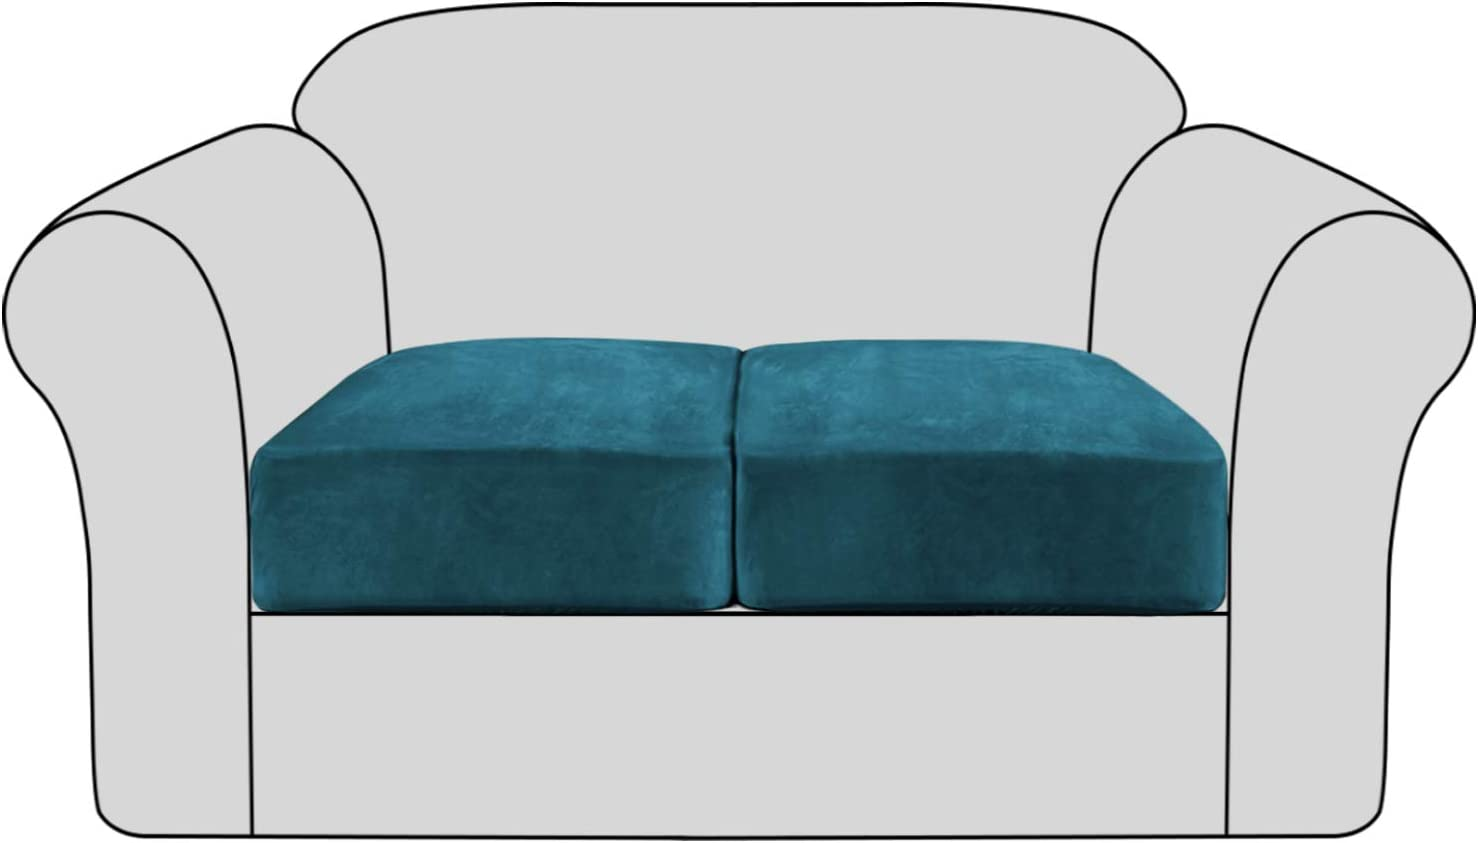 Velvet Stretch Couch Cushion Cover Plush Cushion Slipcover for Chair Loveseat Sofa Cushion Furniture Protector Seat Cushion Sofa Cover with Elastic Bottom Washable (2 Packs, Deep Teal)